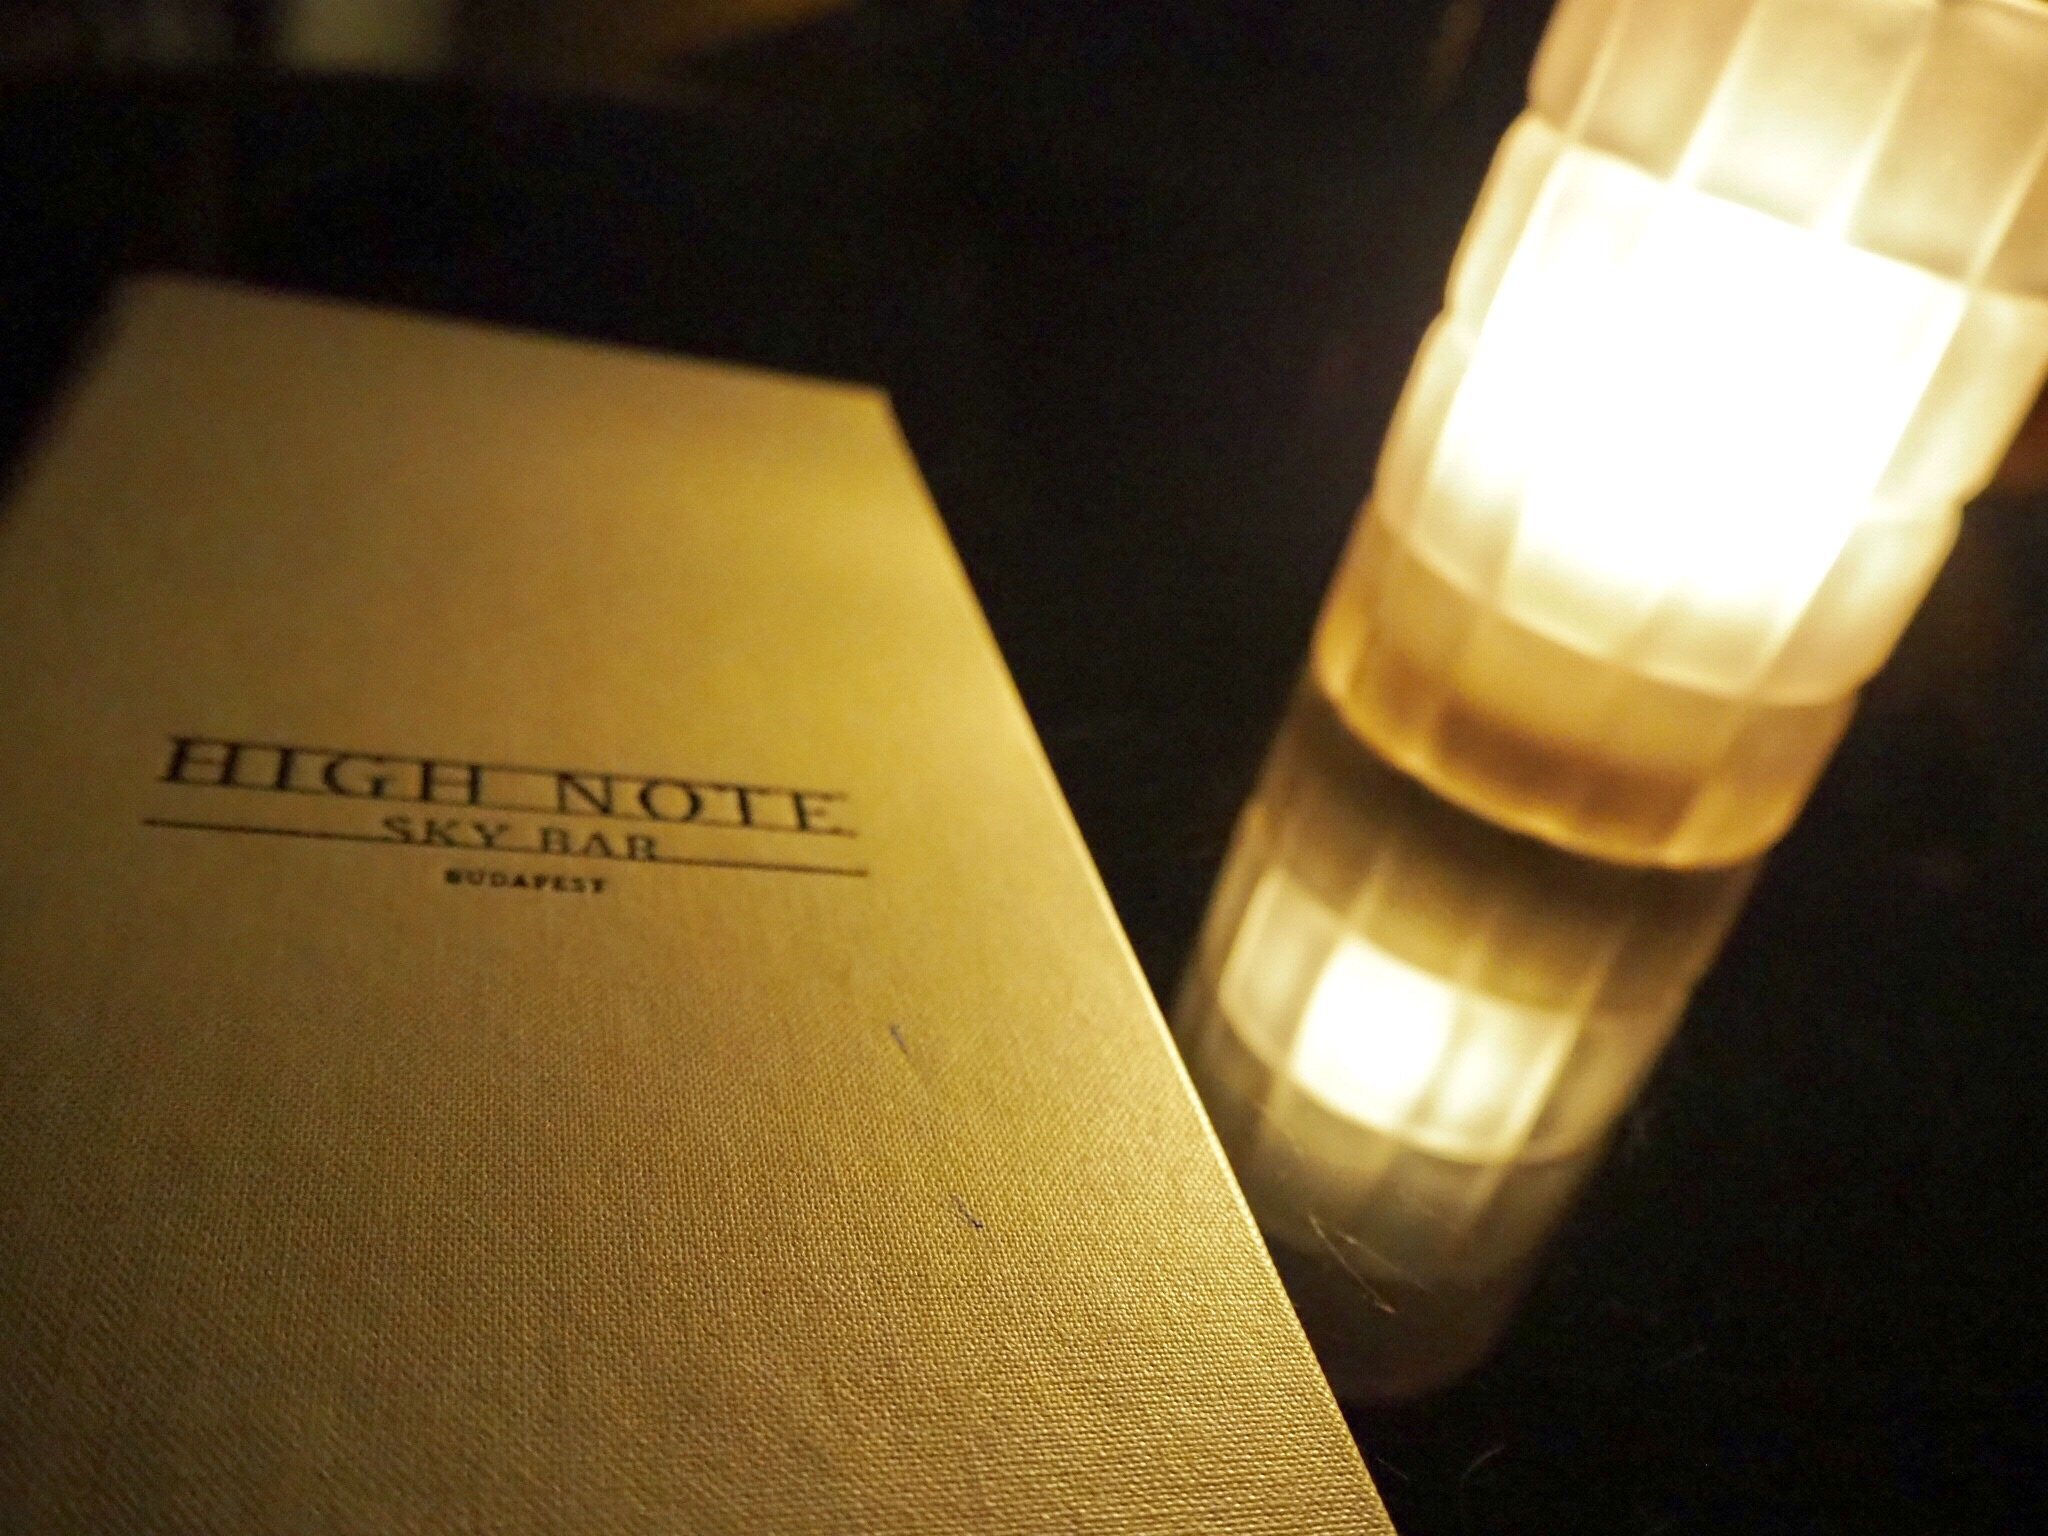 img 4830 - Aria Hotel Budapest - High Note Skybar で過ごすブダペストの夜